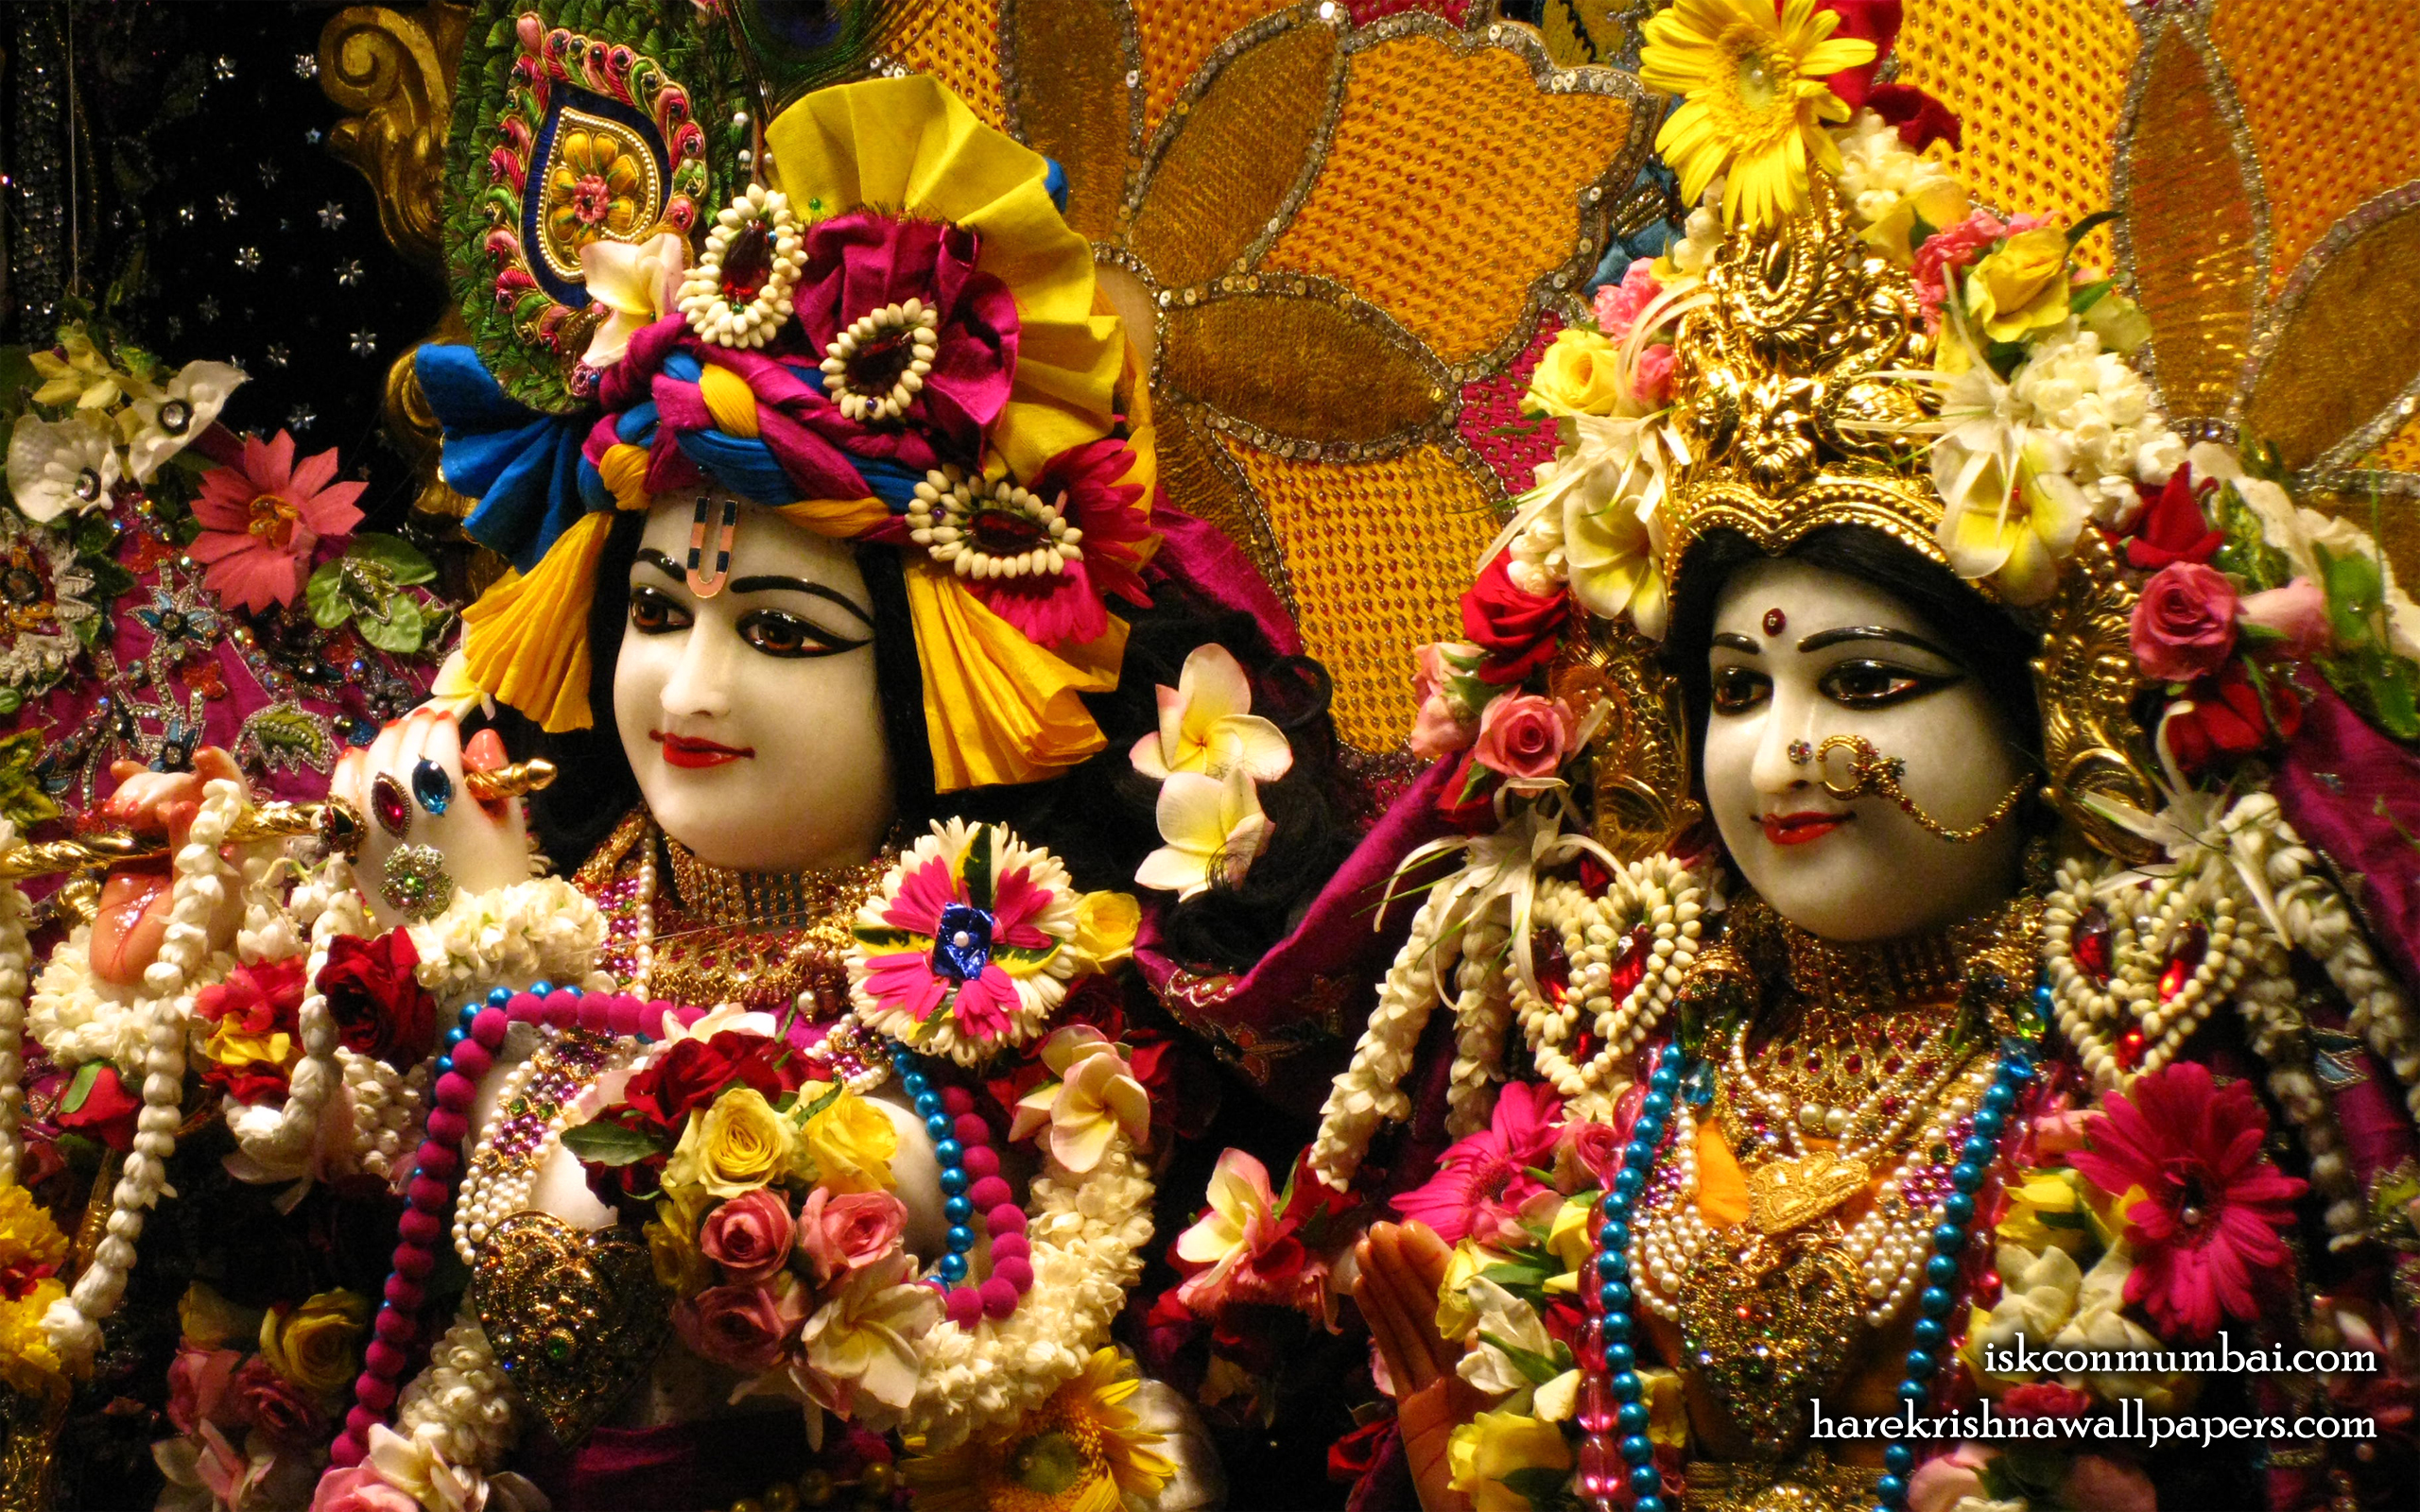 Sri Sri Radha Rasabihari Close up Wallpaper (020) Size 2560x1600 Download